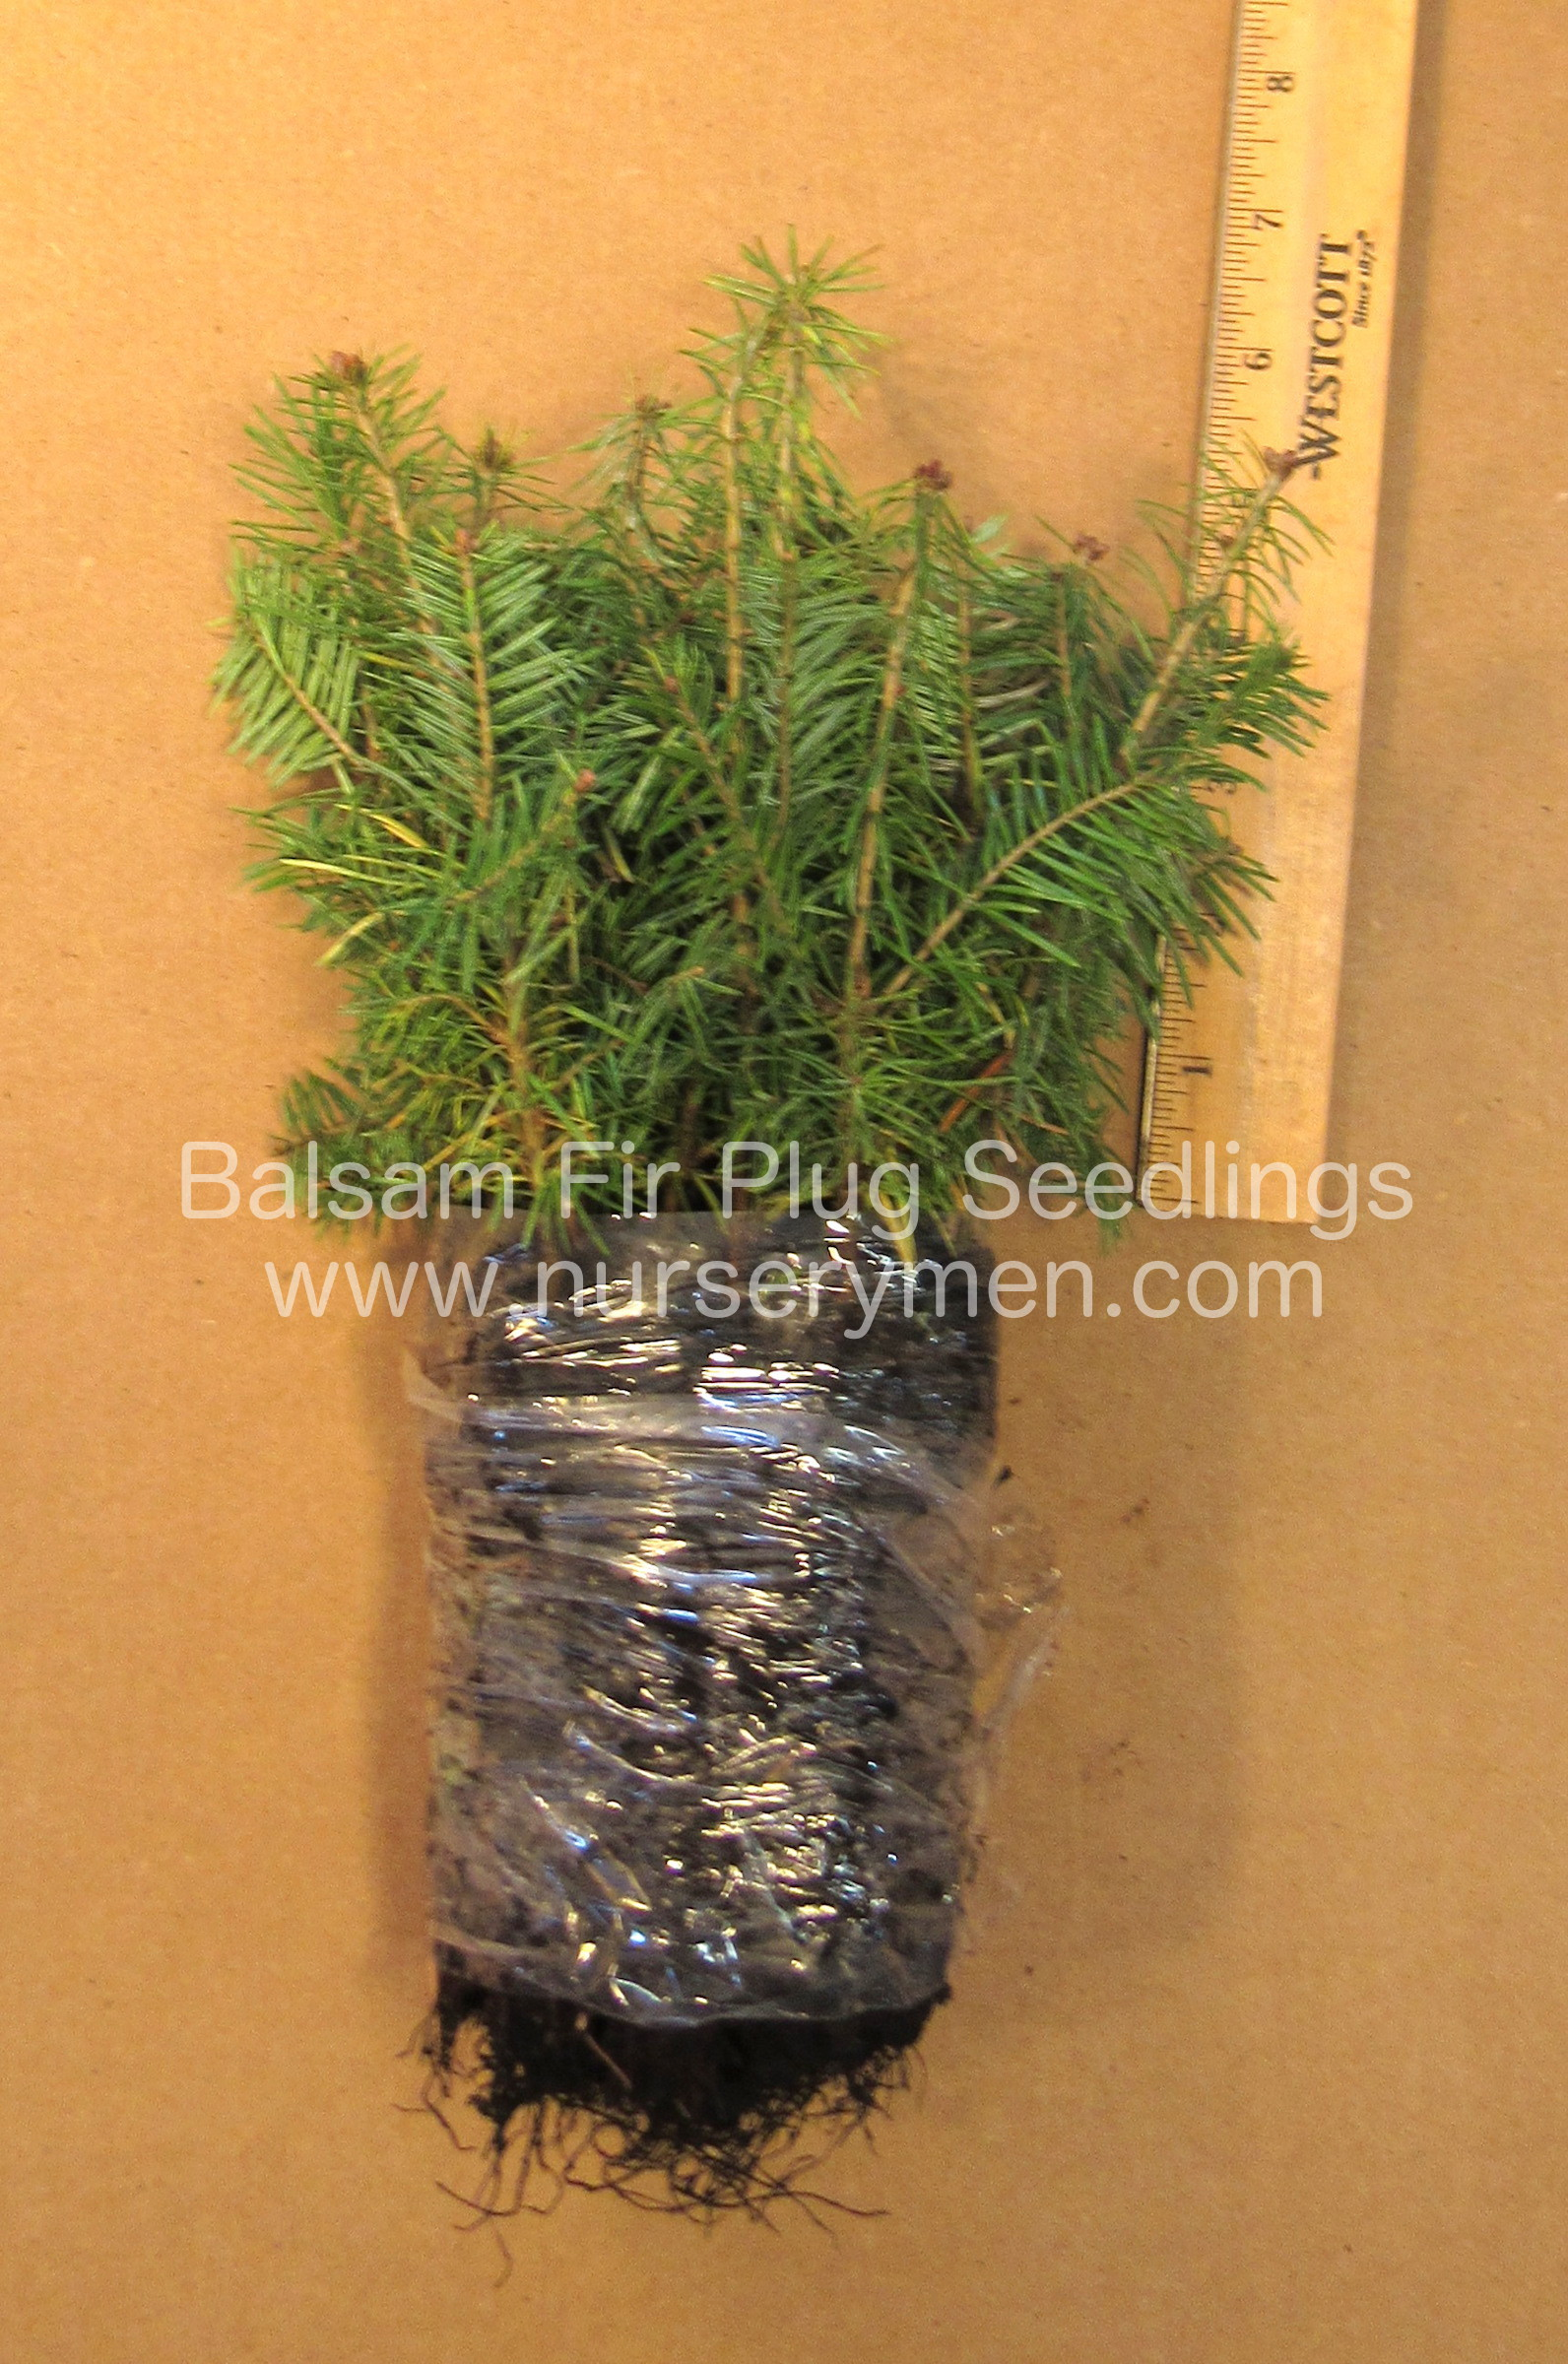 as a christmas tree balsam fir plug seedlings mature to heights of 60 90 feet balsam fir can grow in partial shade and somewhat wetter soils